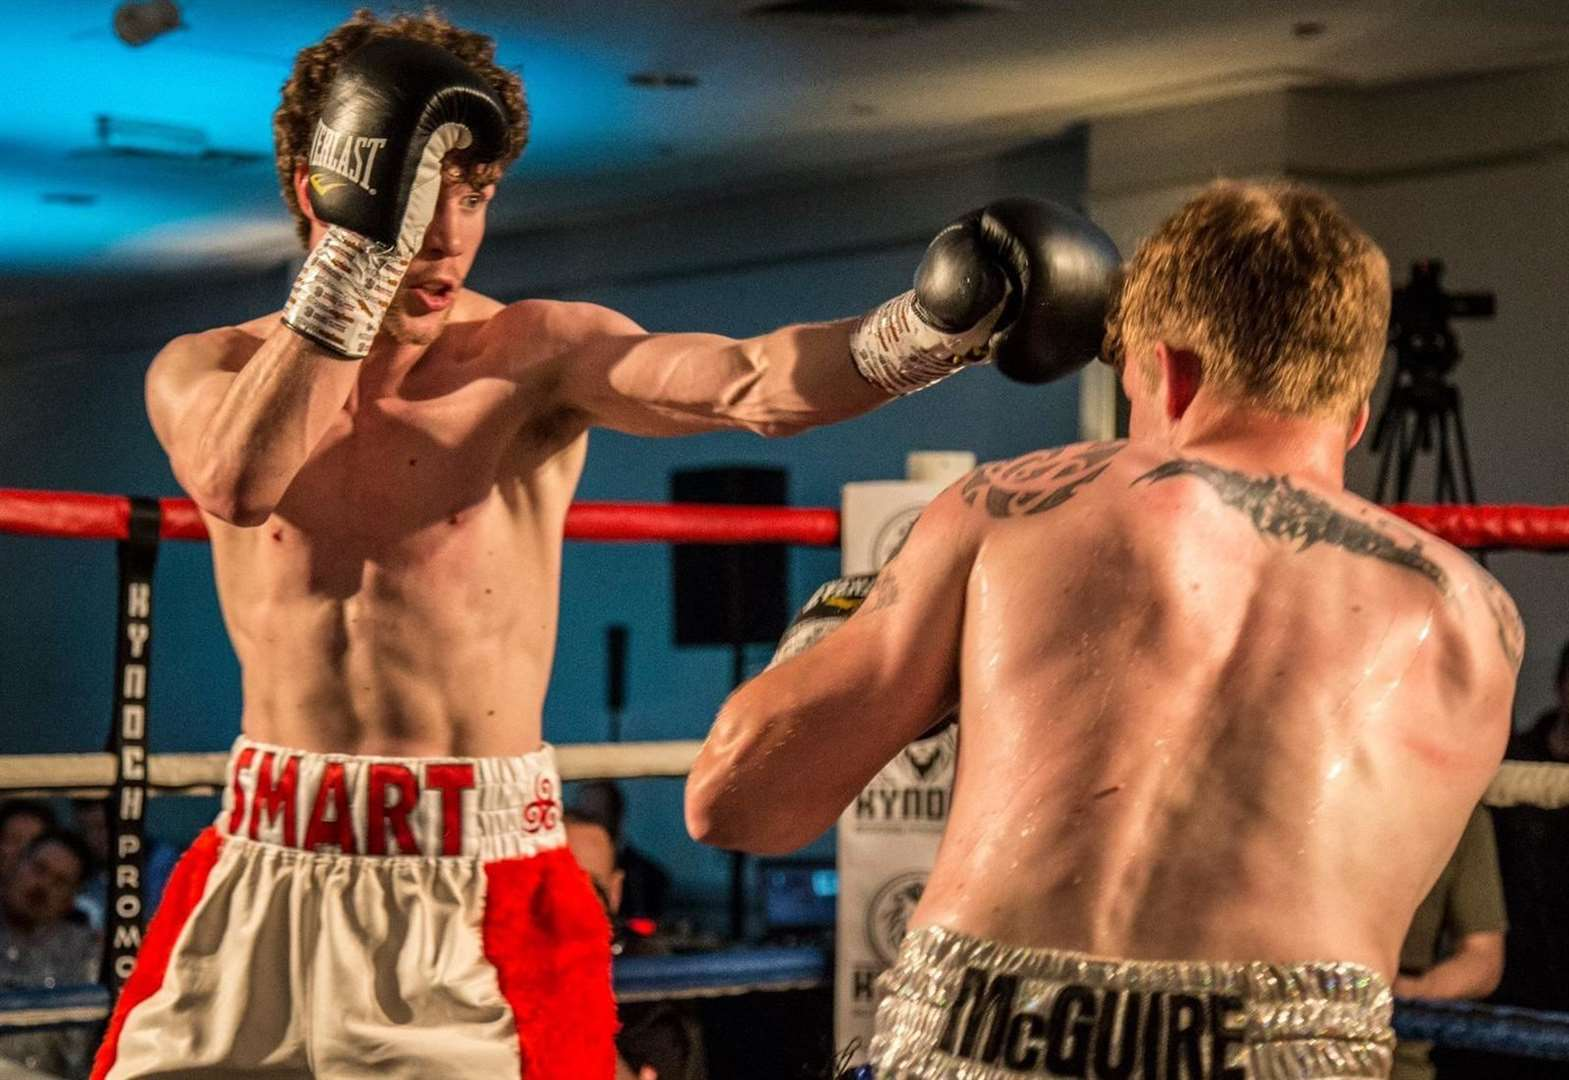 Smart move for Elgin pro fight night